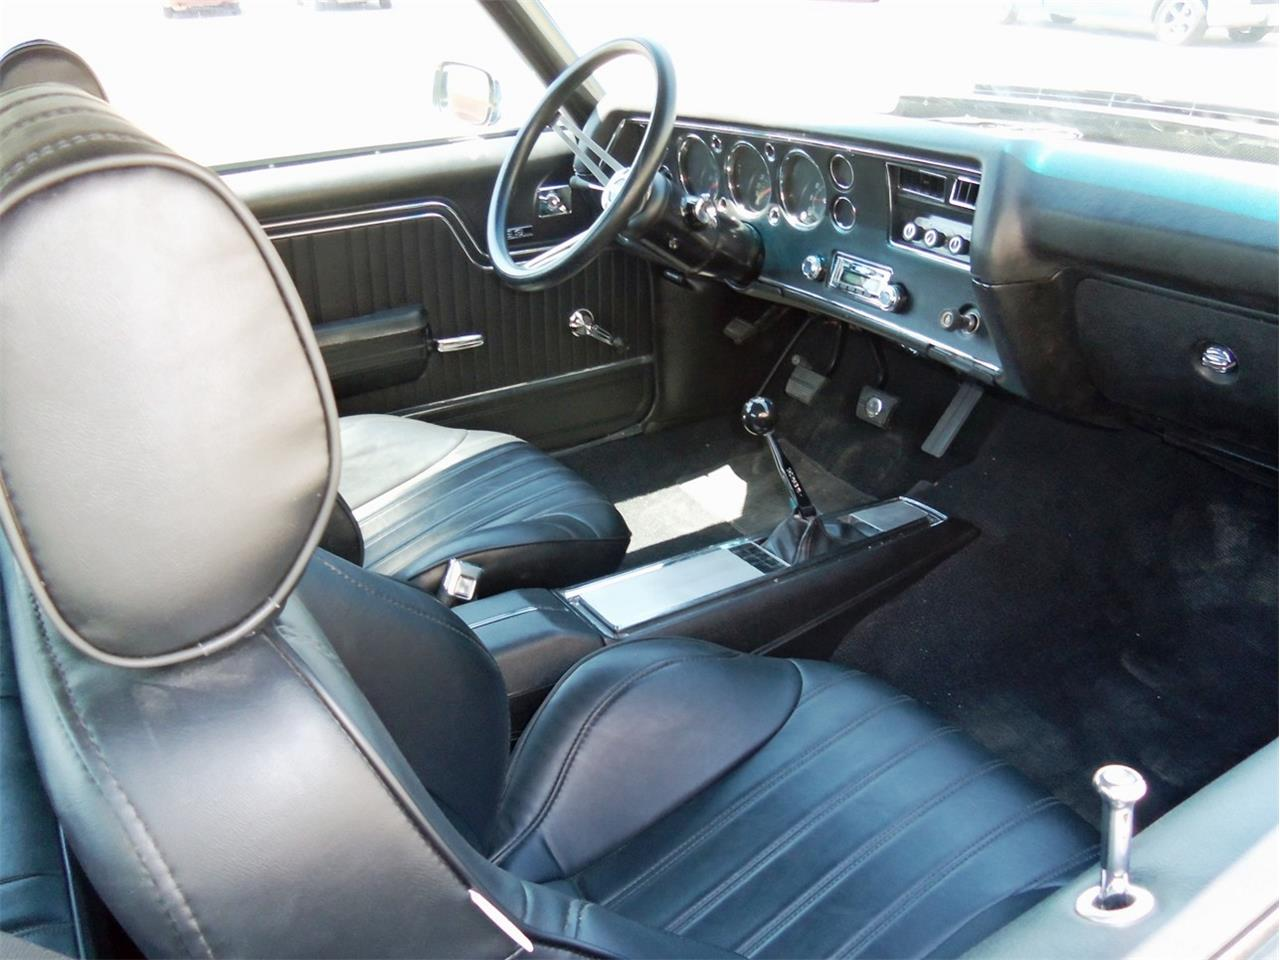 Large Picture of 1972 Chevelle SS located in South Dakota Offered by a Private Seller - OW11